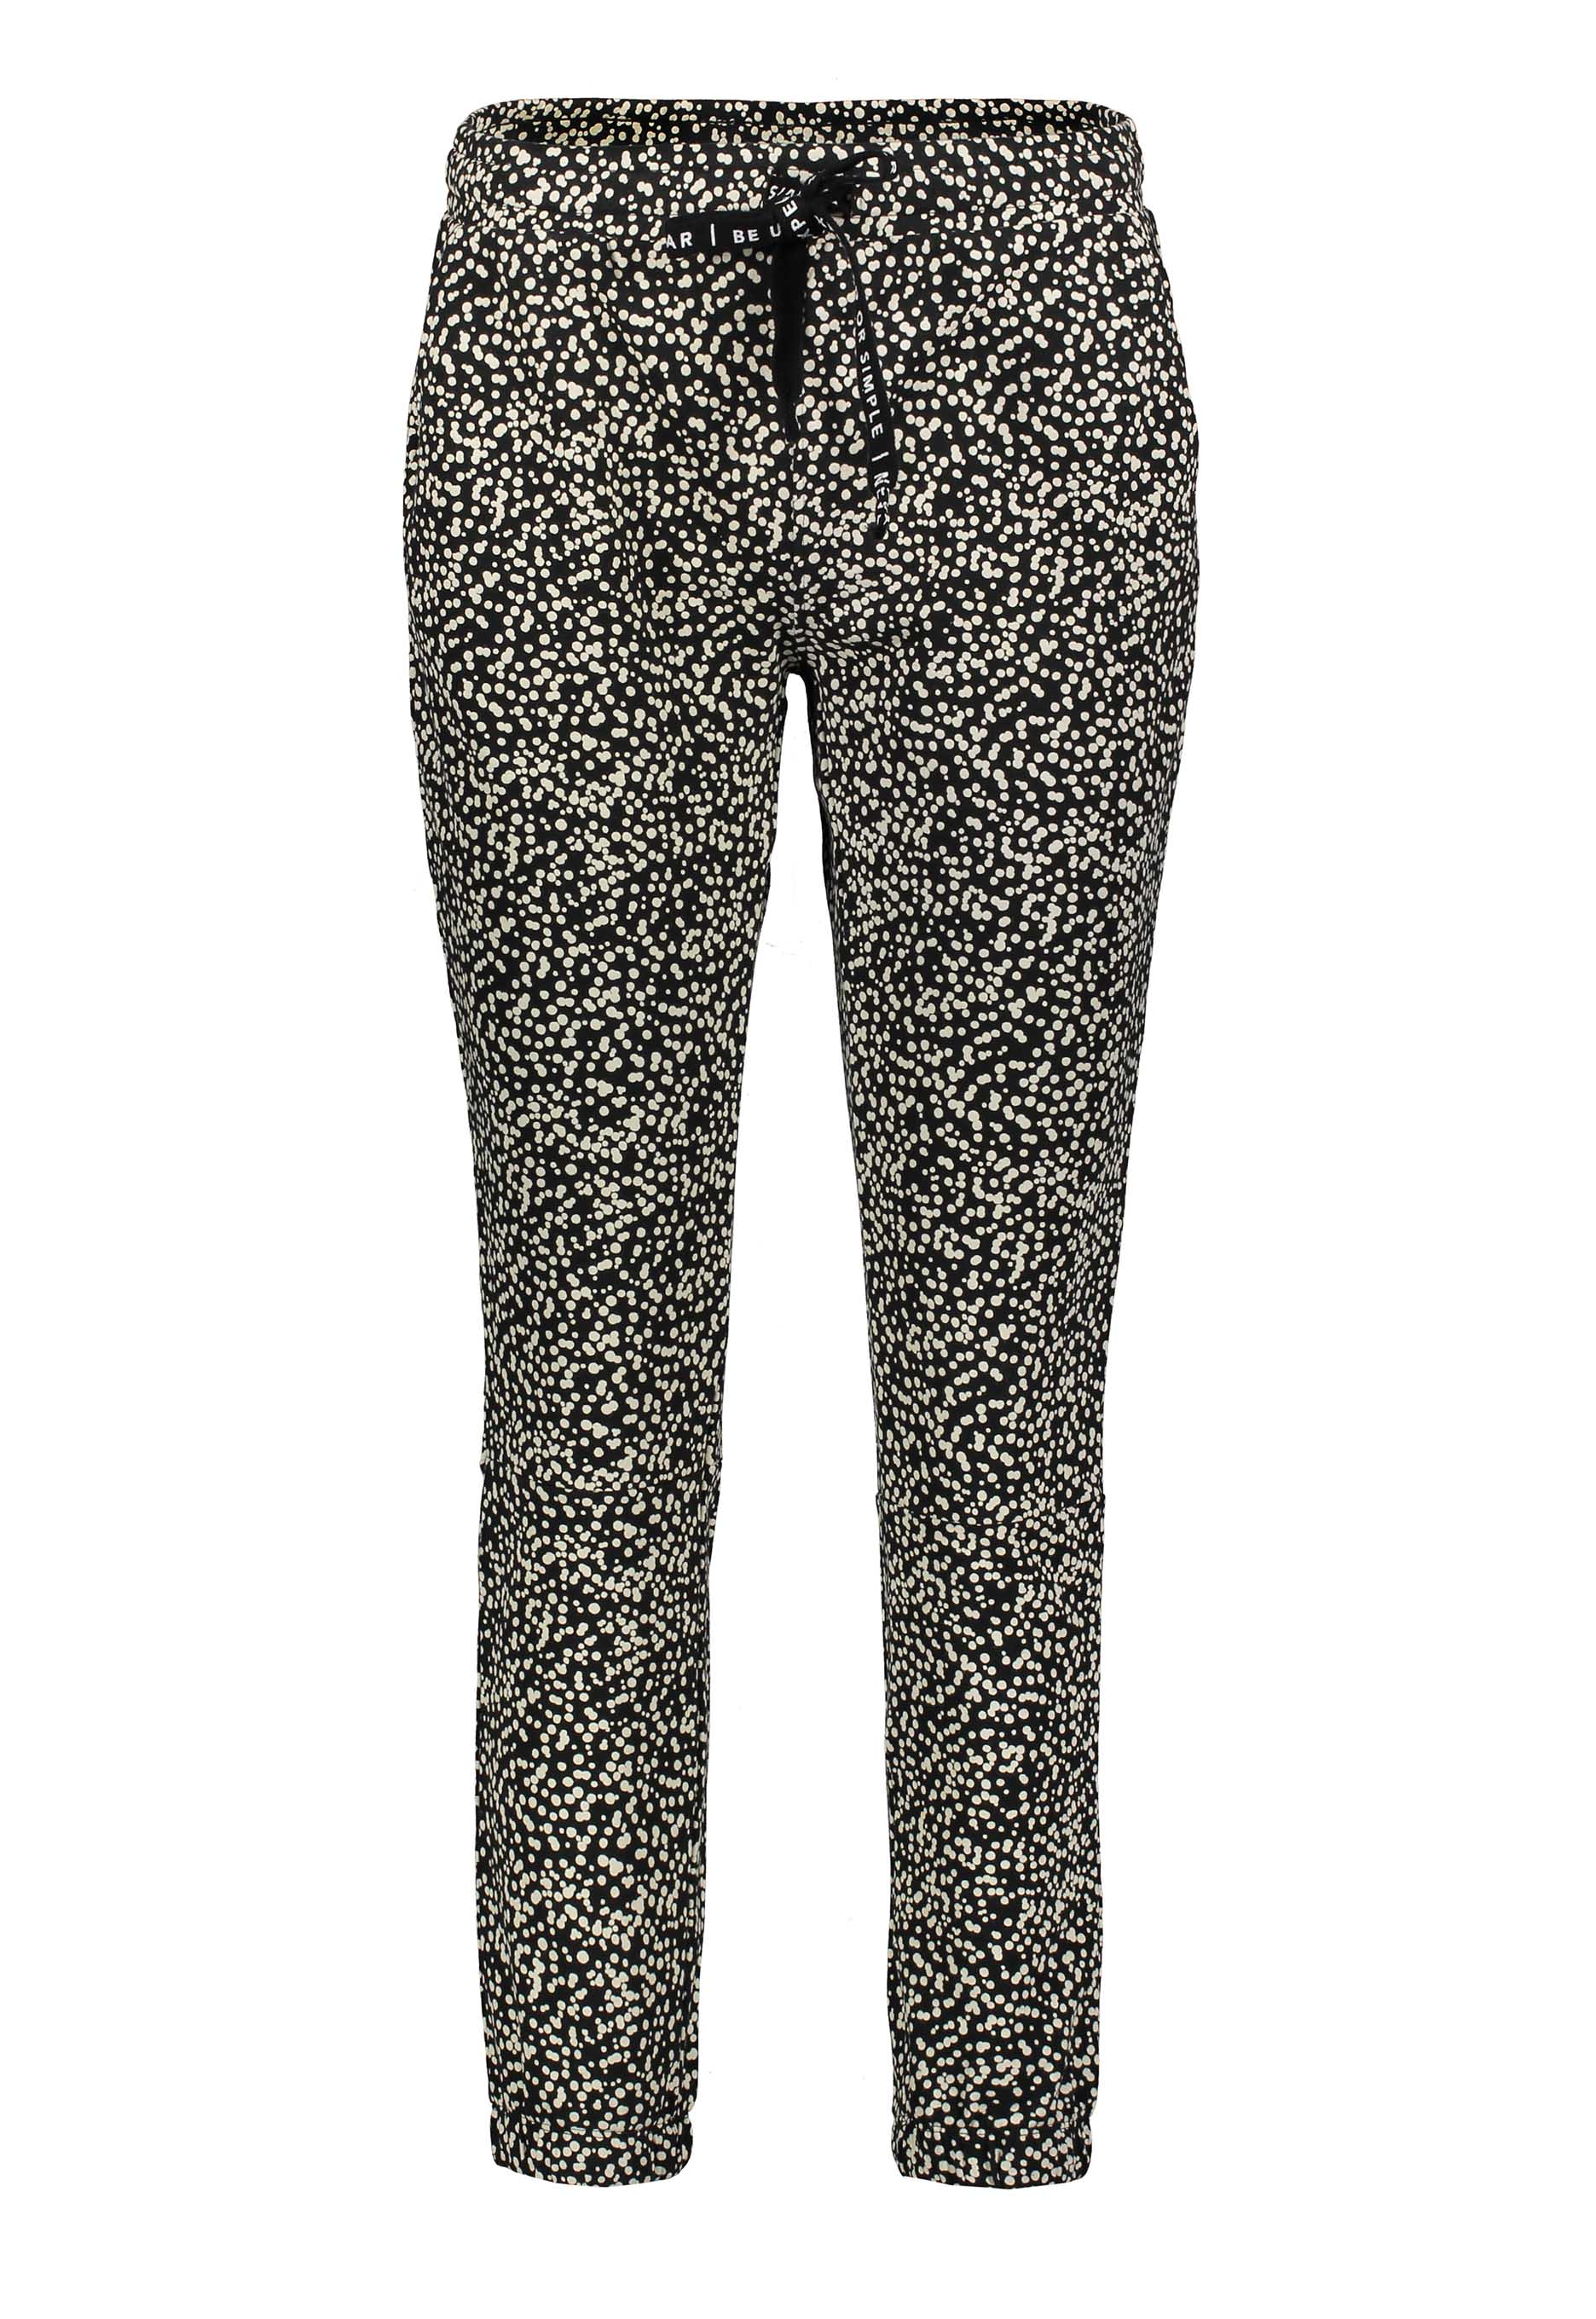 10DAYS Cropped Jogger Confetti Broek